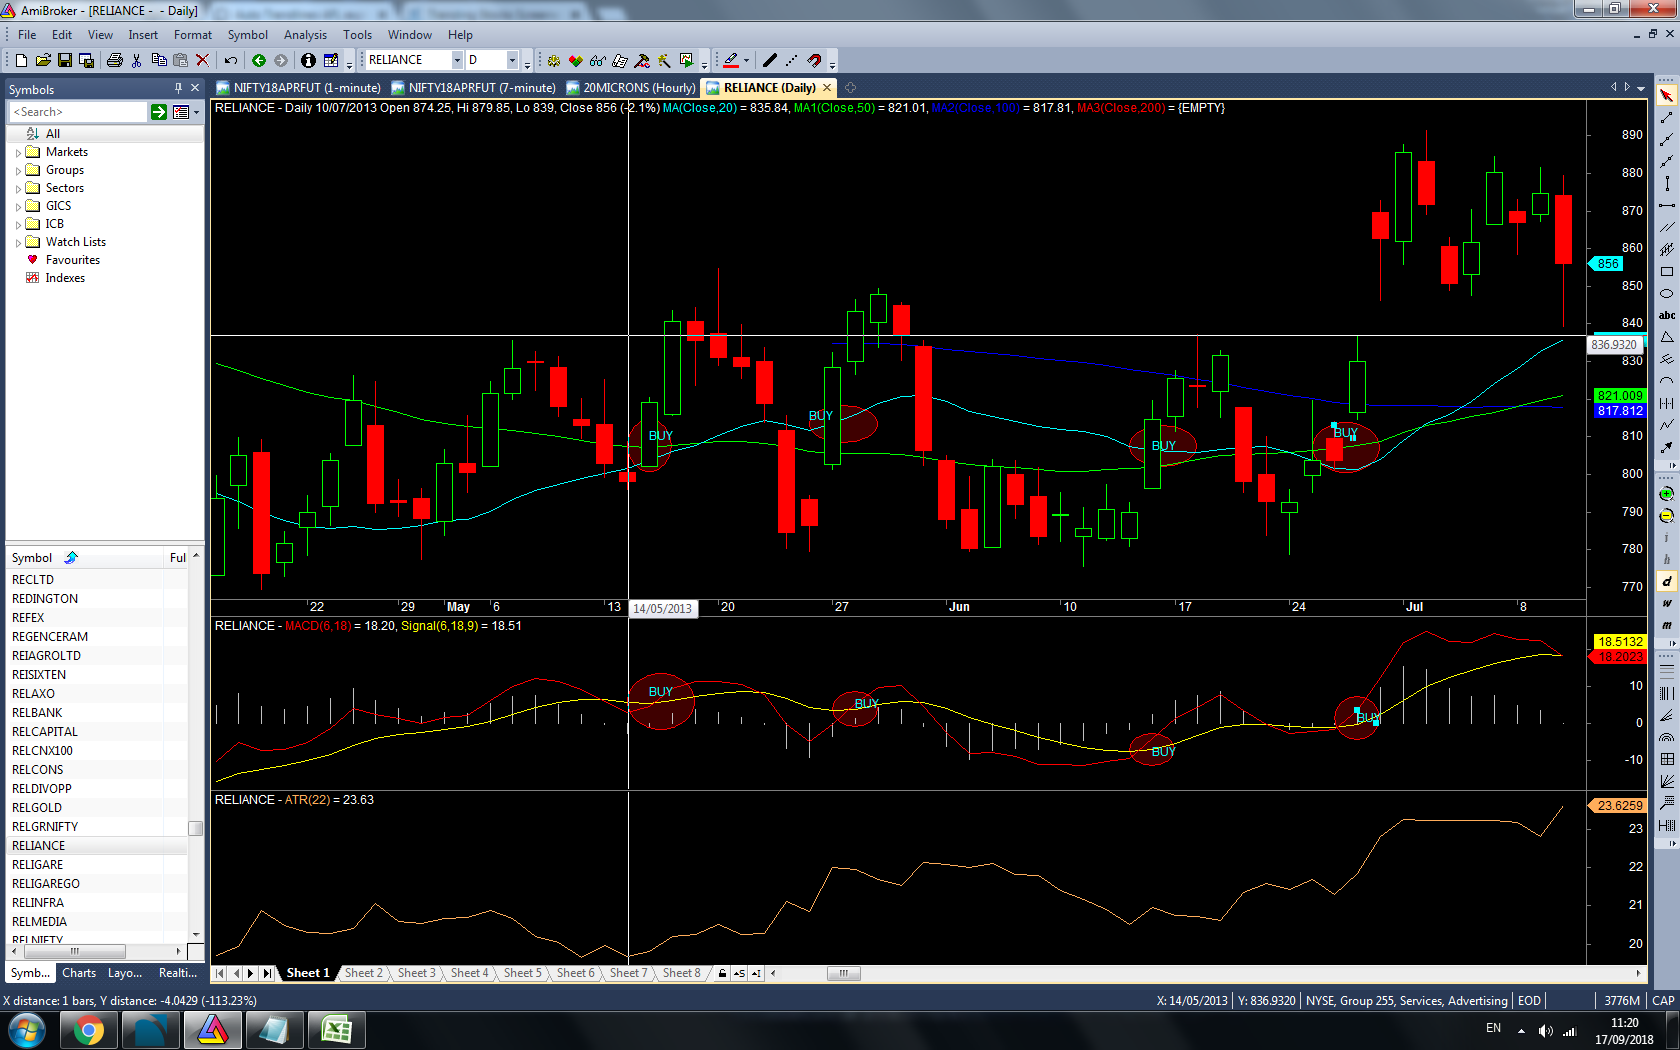 Exploration to find out bullish stocks based on MACD cross over & 50